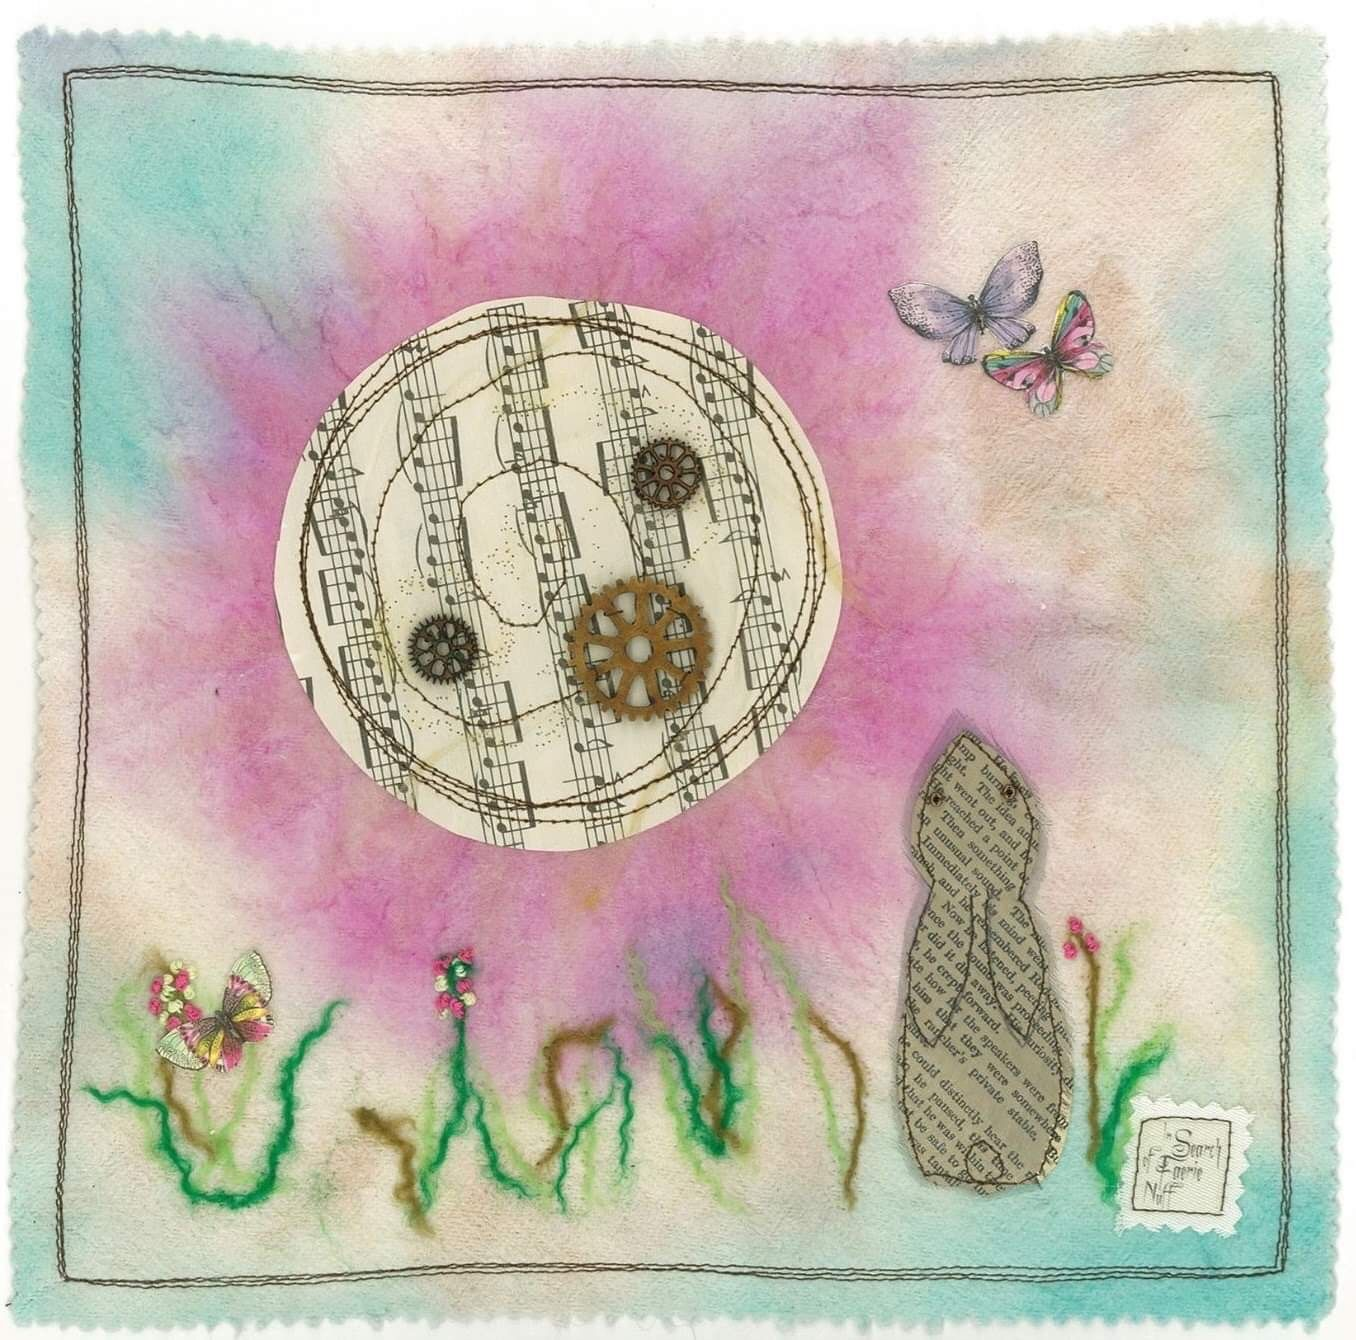 Hare and paper moon greetings card